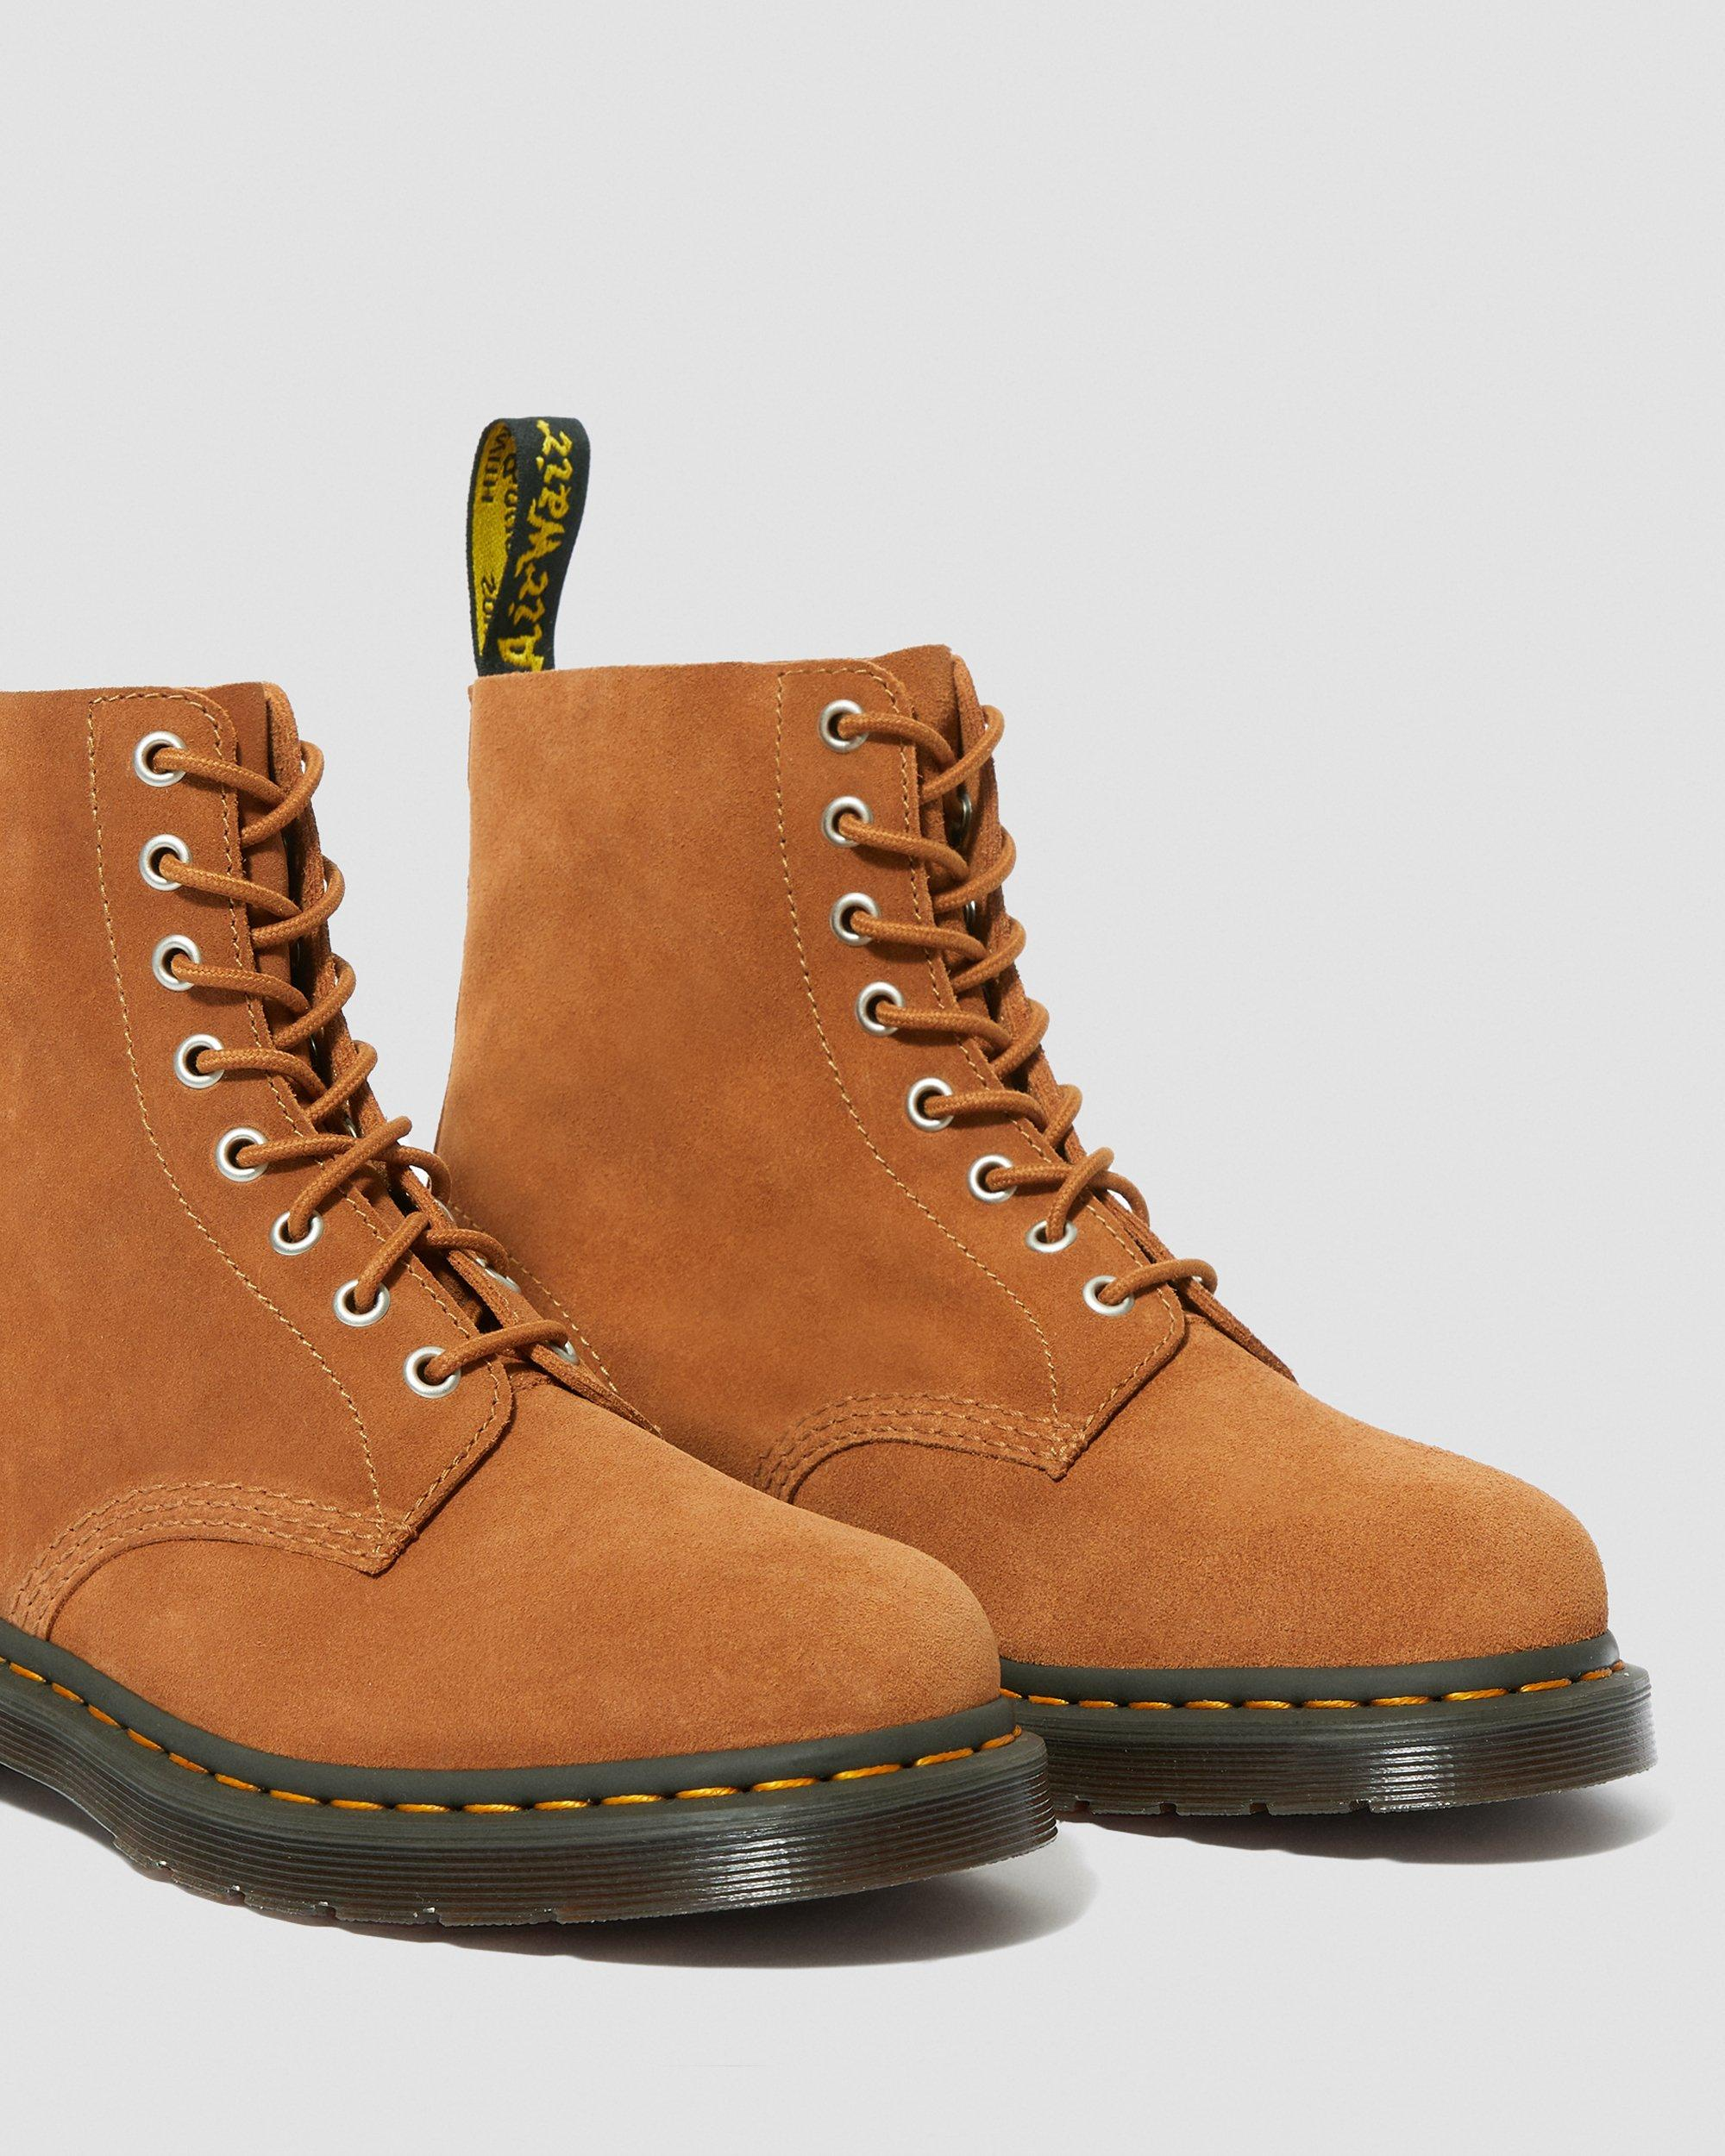 1460 PASCAL SUEDE ANKLE BOOTS | Dr. Martens France